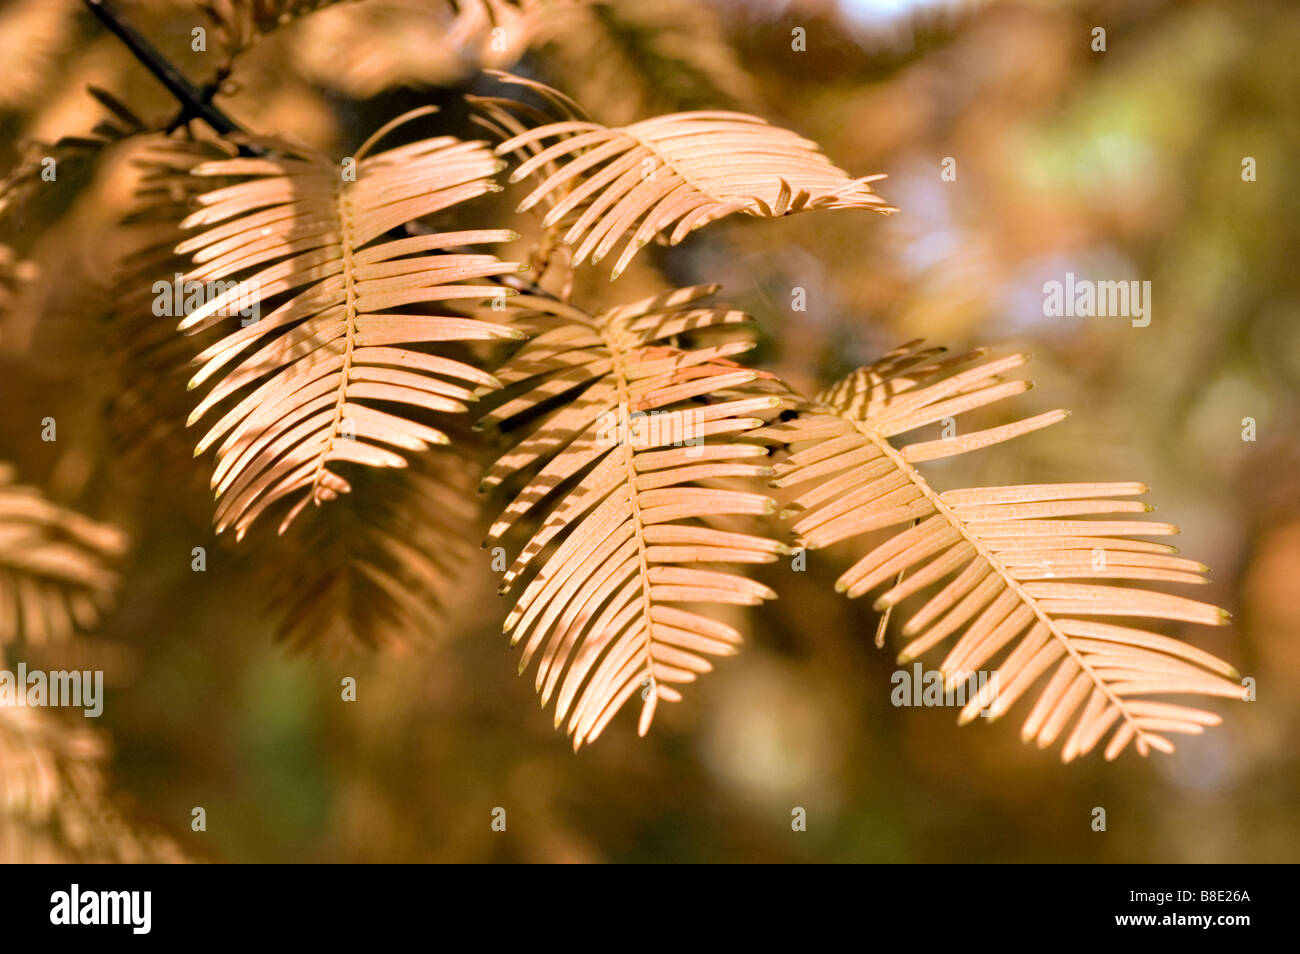 Dawn redwood  Taxodiaceae, Metasequoia glyptostroboides, China, Asia - Stock Image